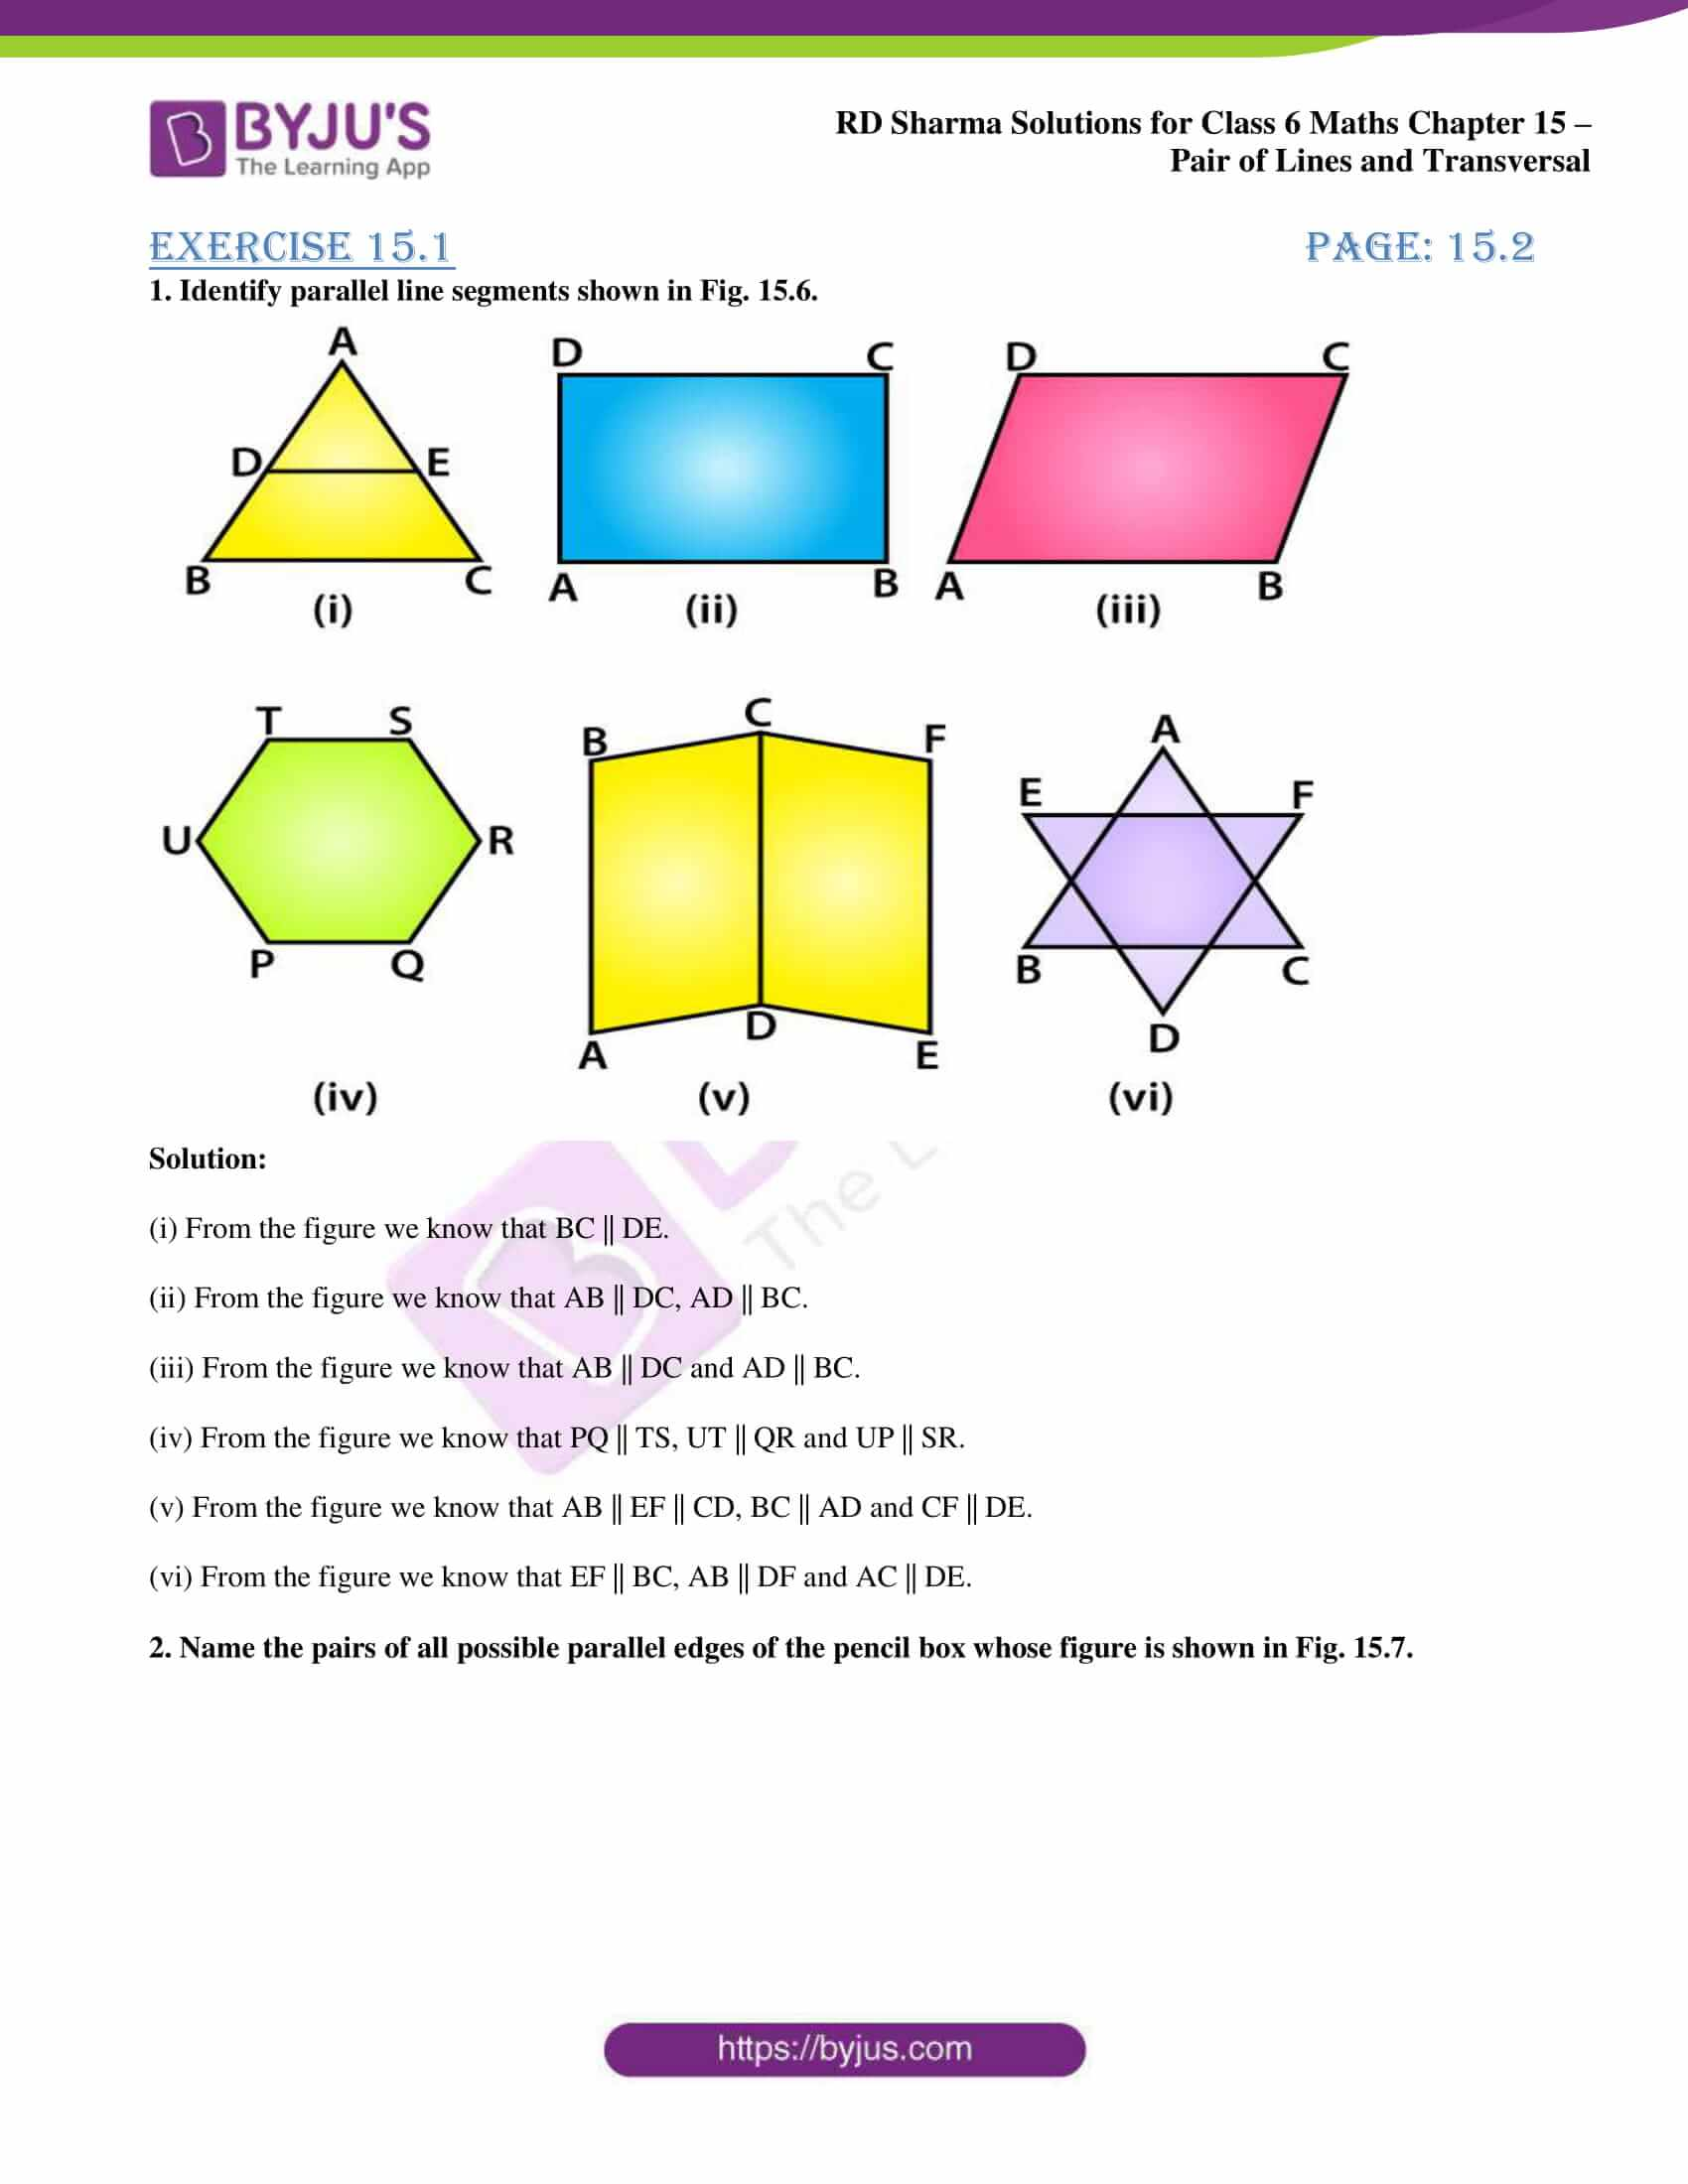 rd sharma solutions nov2020 class 6 maths chapter 15 exercise 1 1